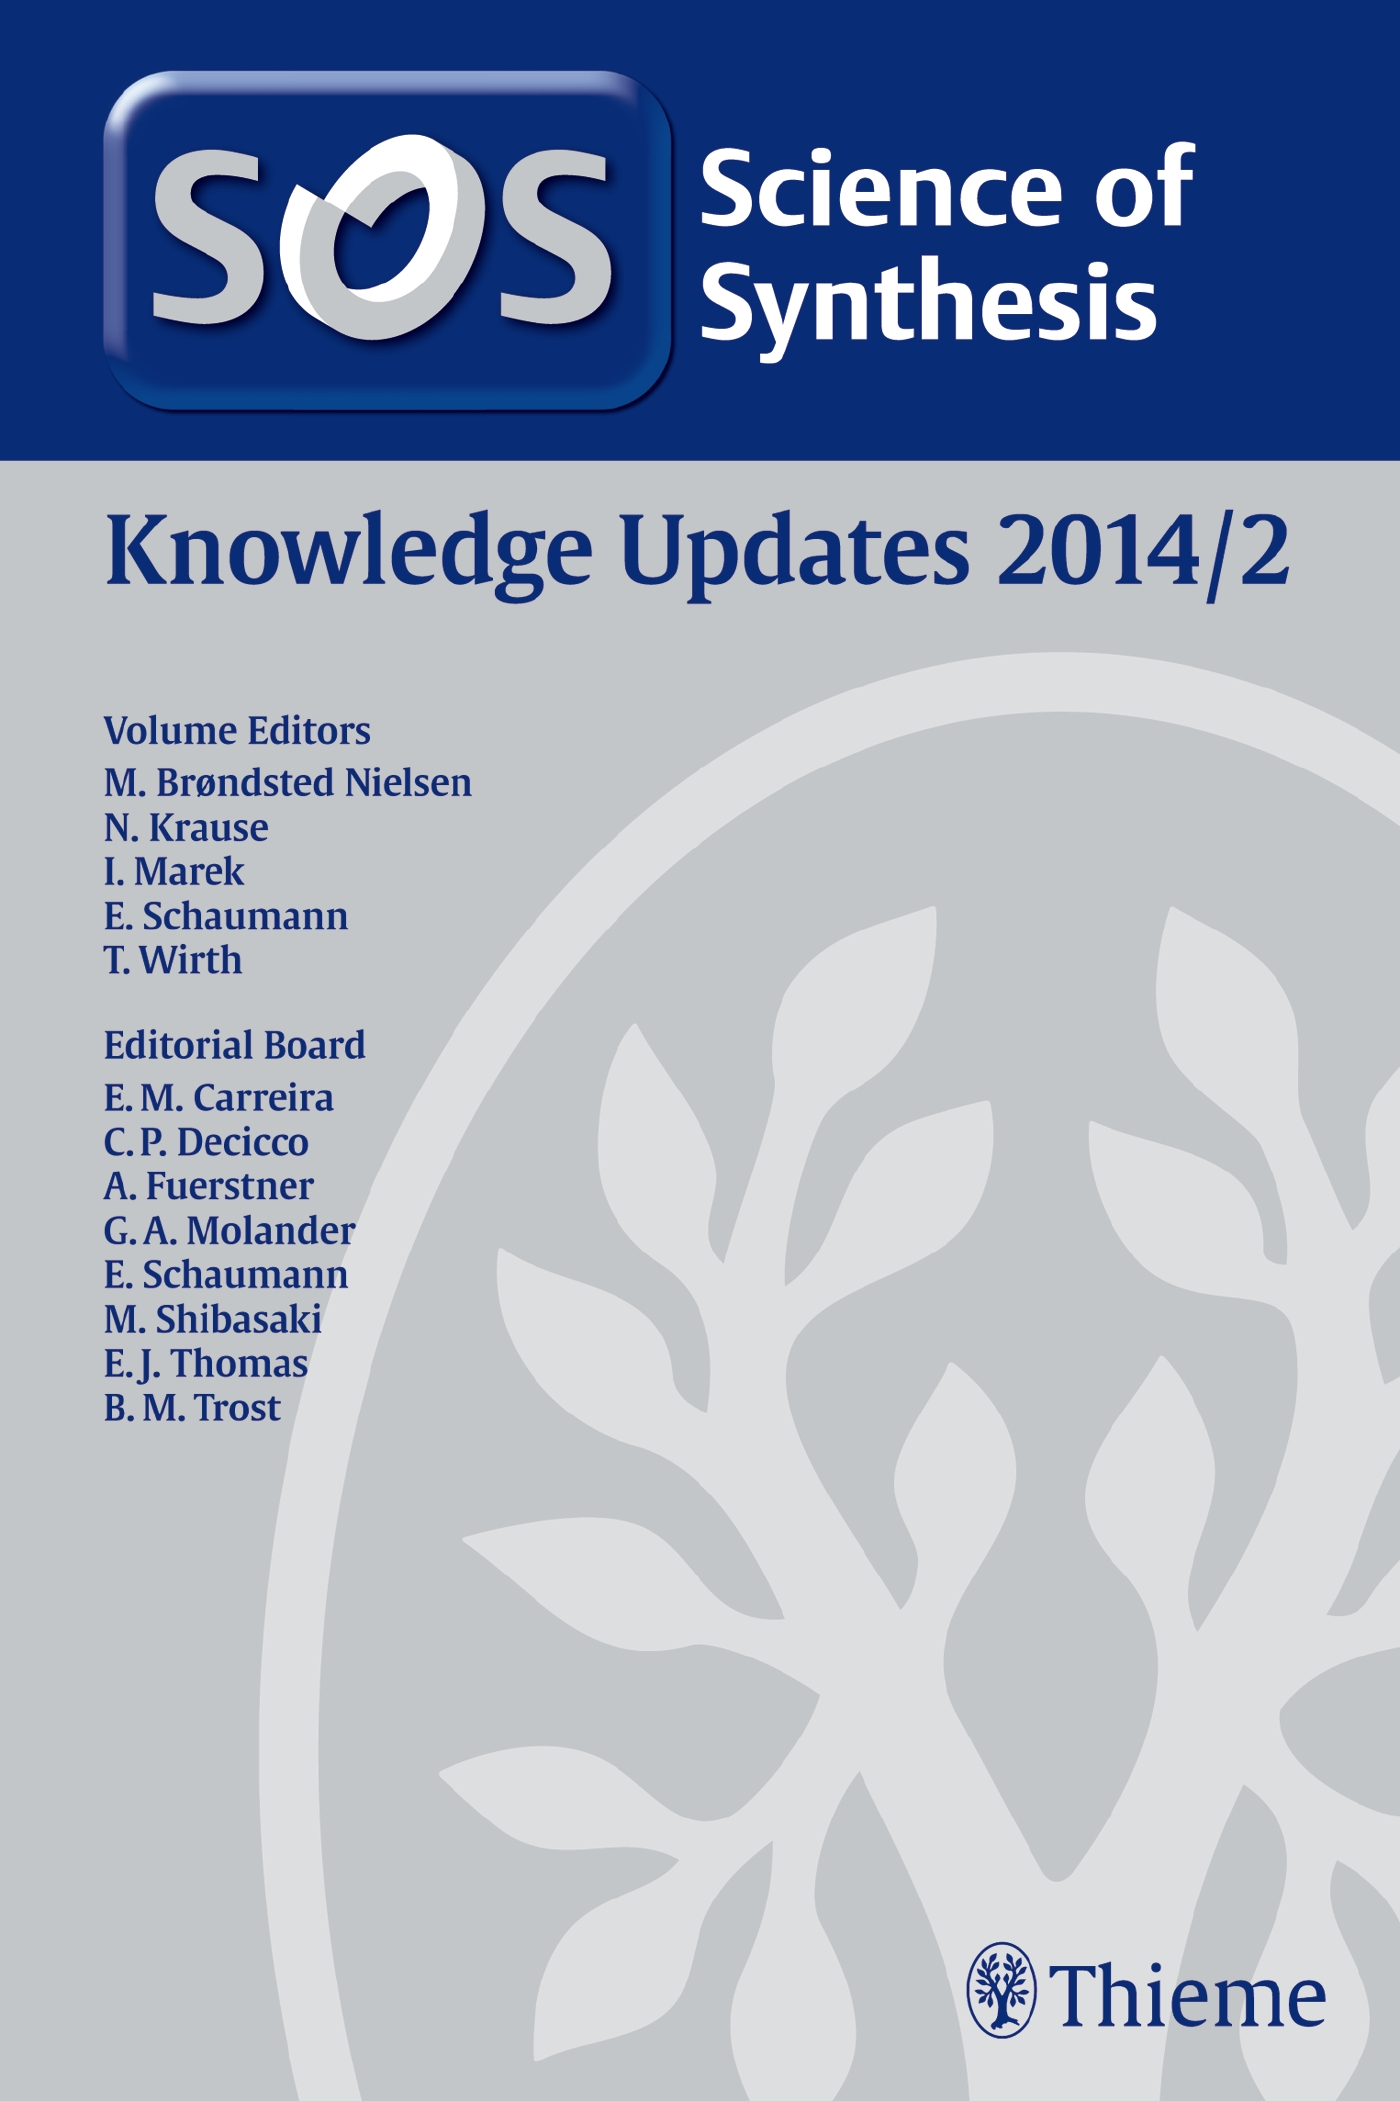 Science of Synthesis Knowledge Updates 2014 Vol. 2